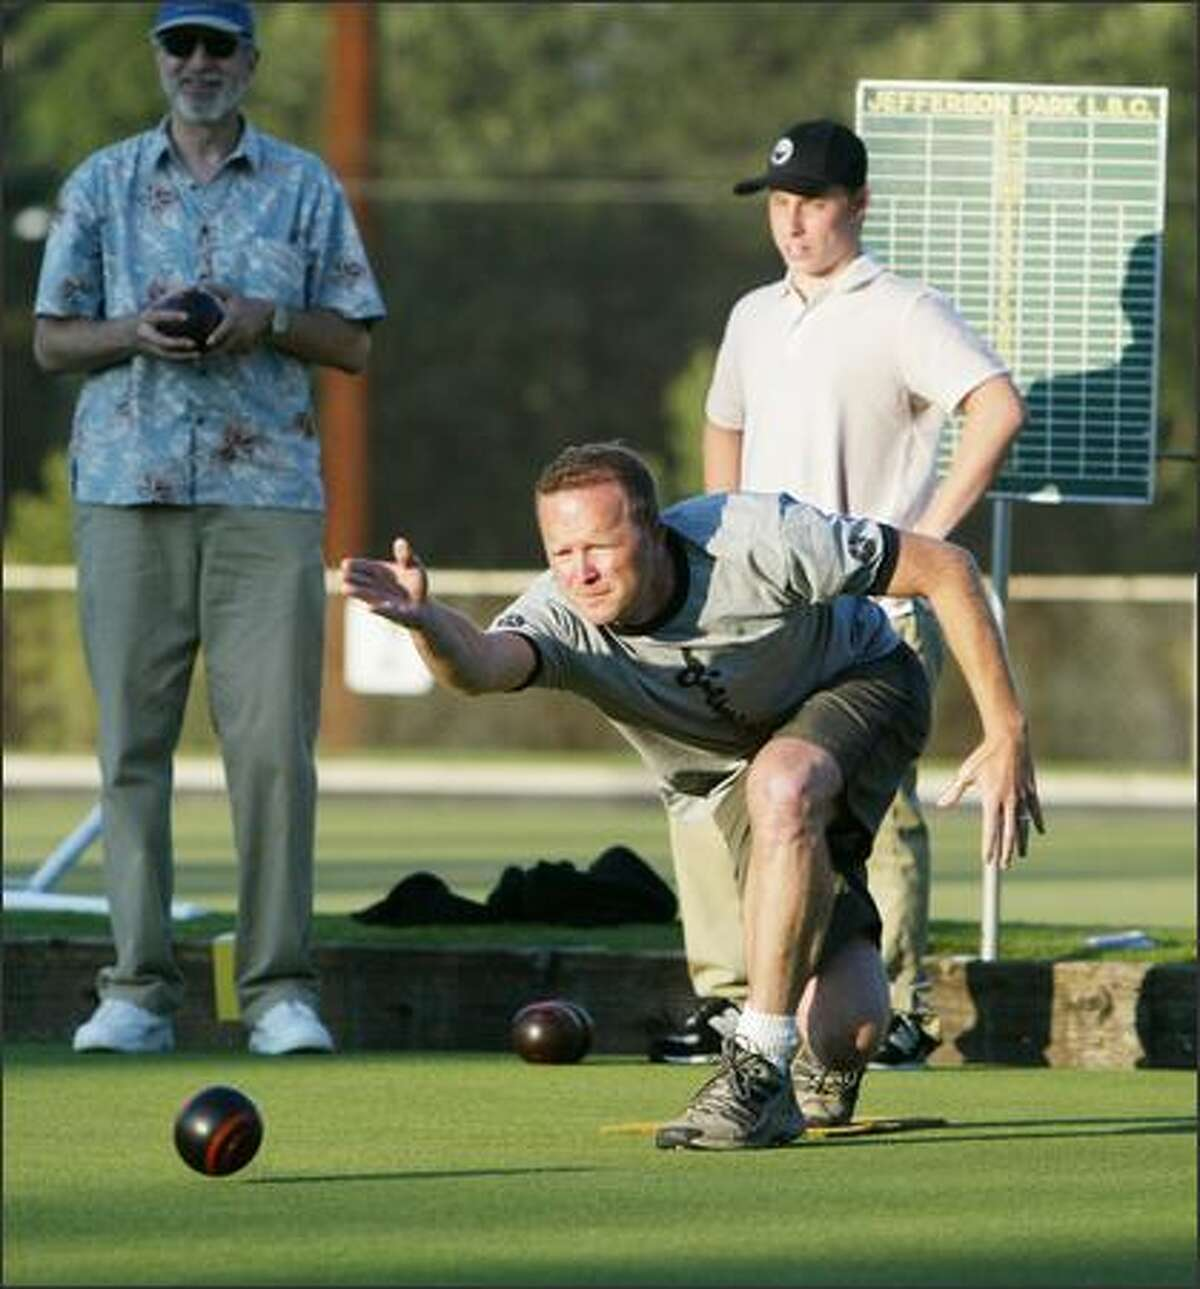 Pete Smith lets loose his bowl as Gene Freedman (left) and Harry Jamieson watch during an Aug. 2 match. Lawn Bowling is dying in the U.S. But at Jefferson Park Lawn Bowling Club on Beacon Hill in Seattle, the sport is making a comeback among younger folks, as evidenced by a men's lawn bowling league called Men With Big Bowls that competes on Tuesday nights. Jamieson, for example, is 17 and going into his senior year at Garfield High School.